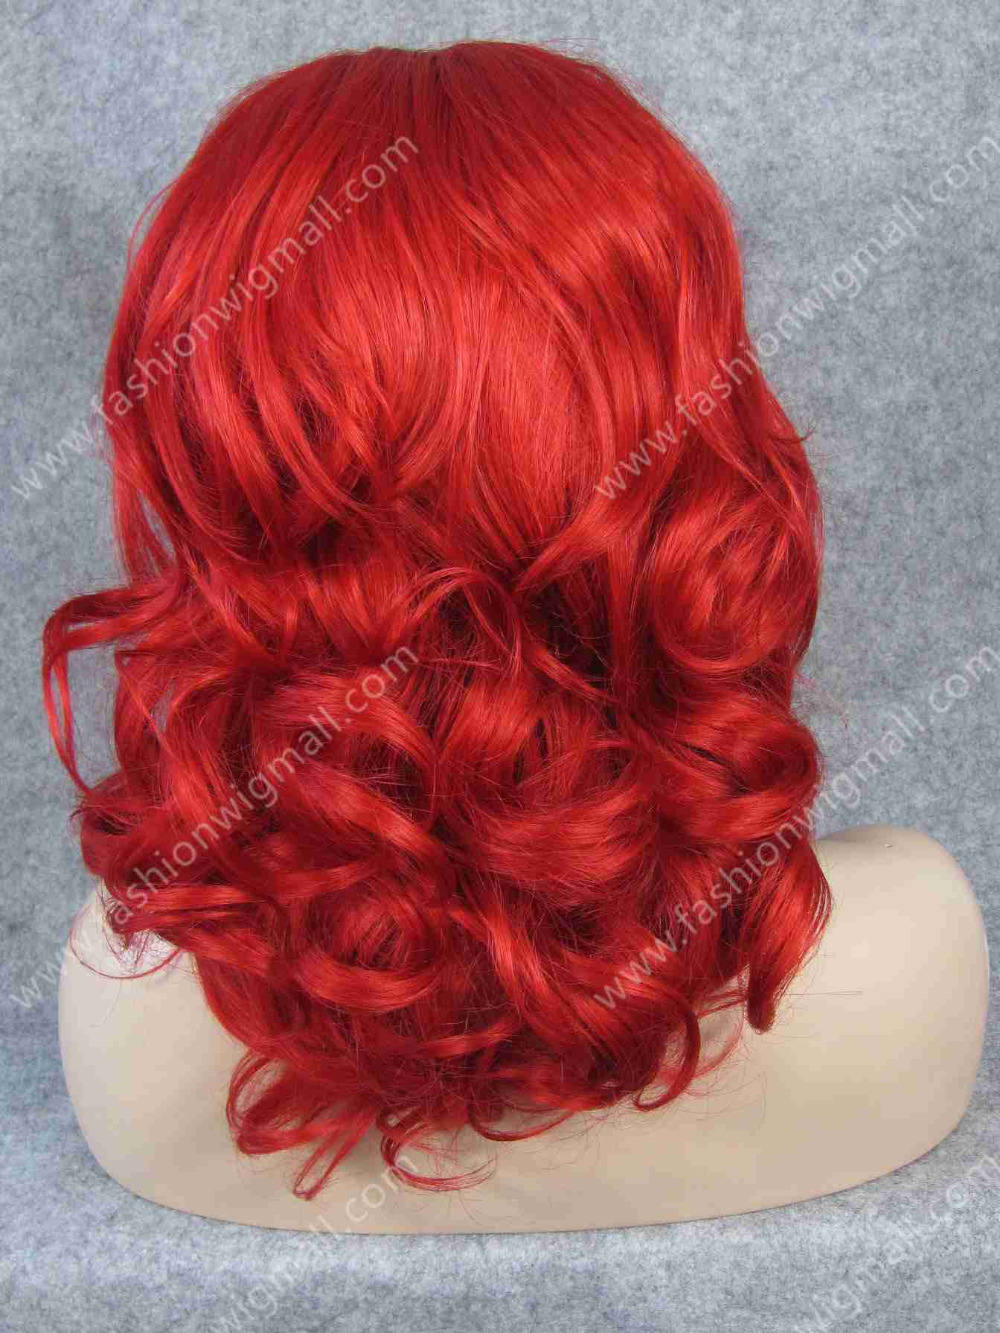 Instock 16 #3100 Red Wavy Wig Medium Long Body Wave Ladies Kanekalon Lace Front Synthetic Wig S19<br><br>Aliexpress